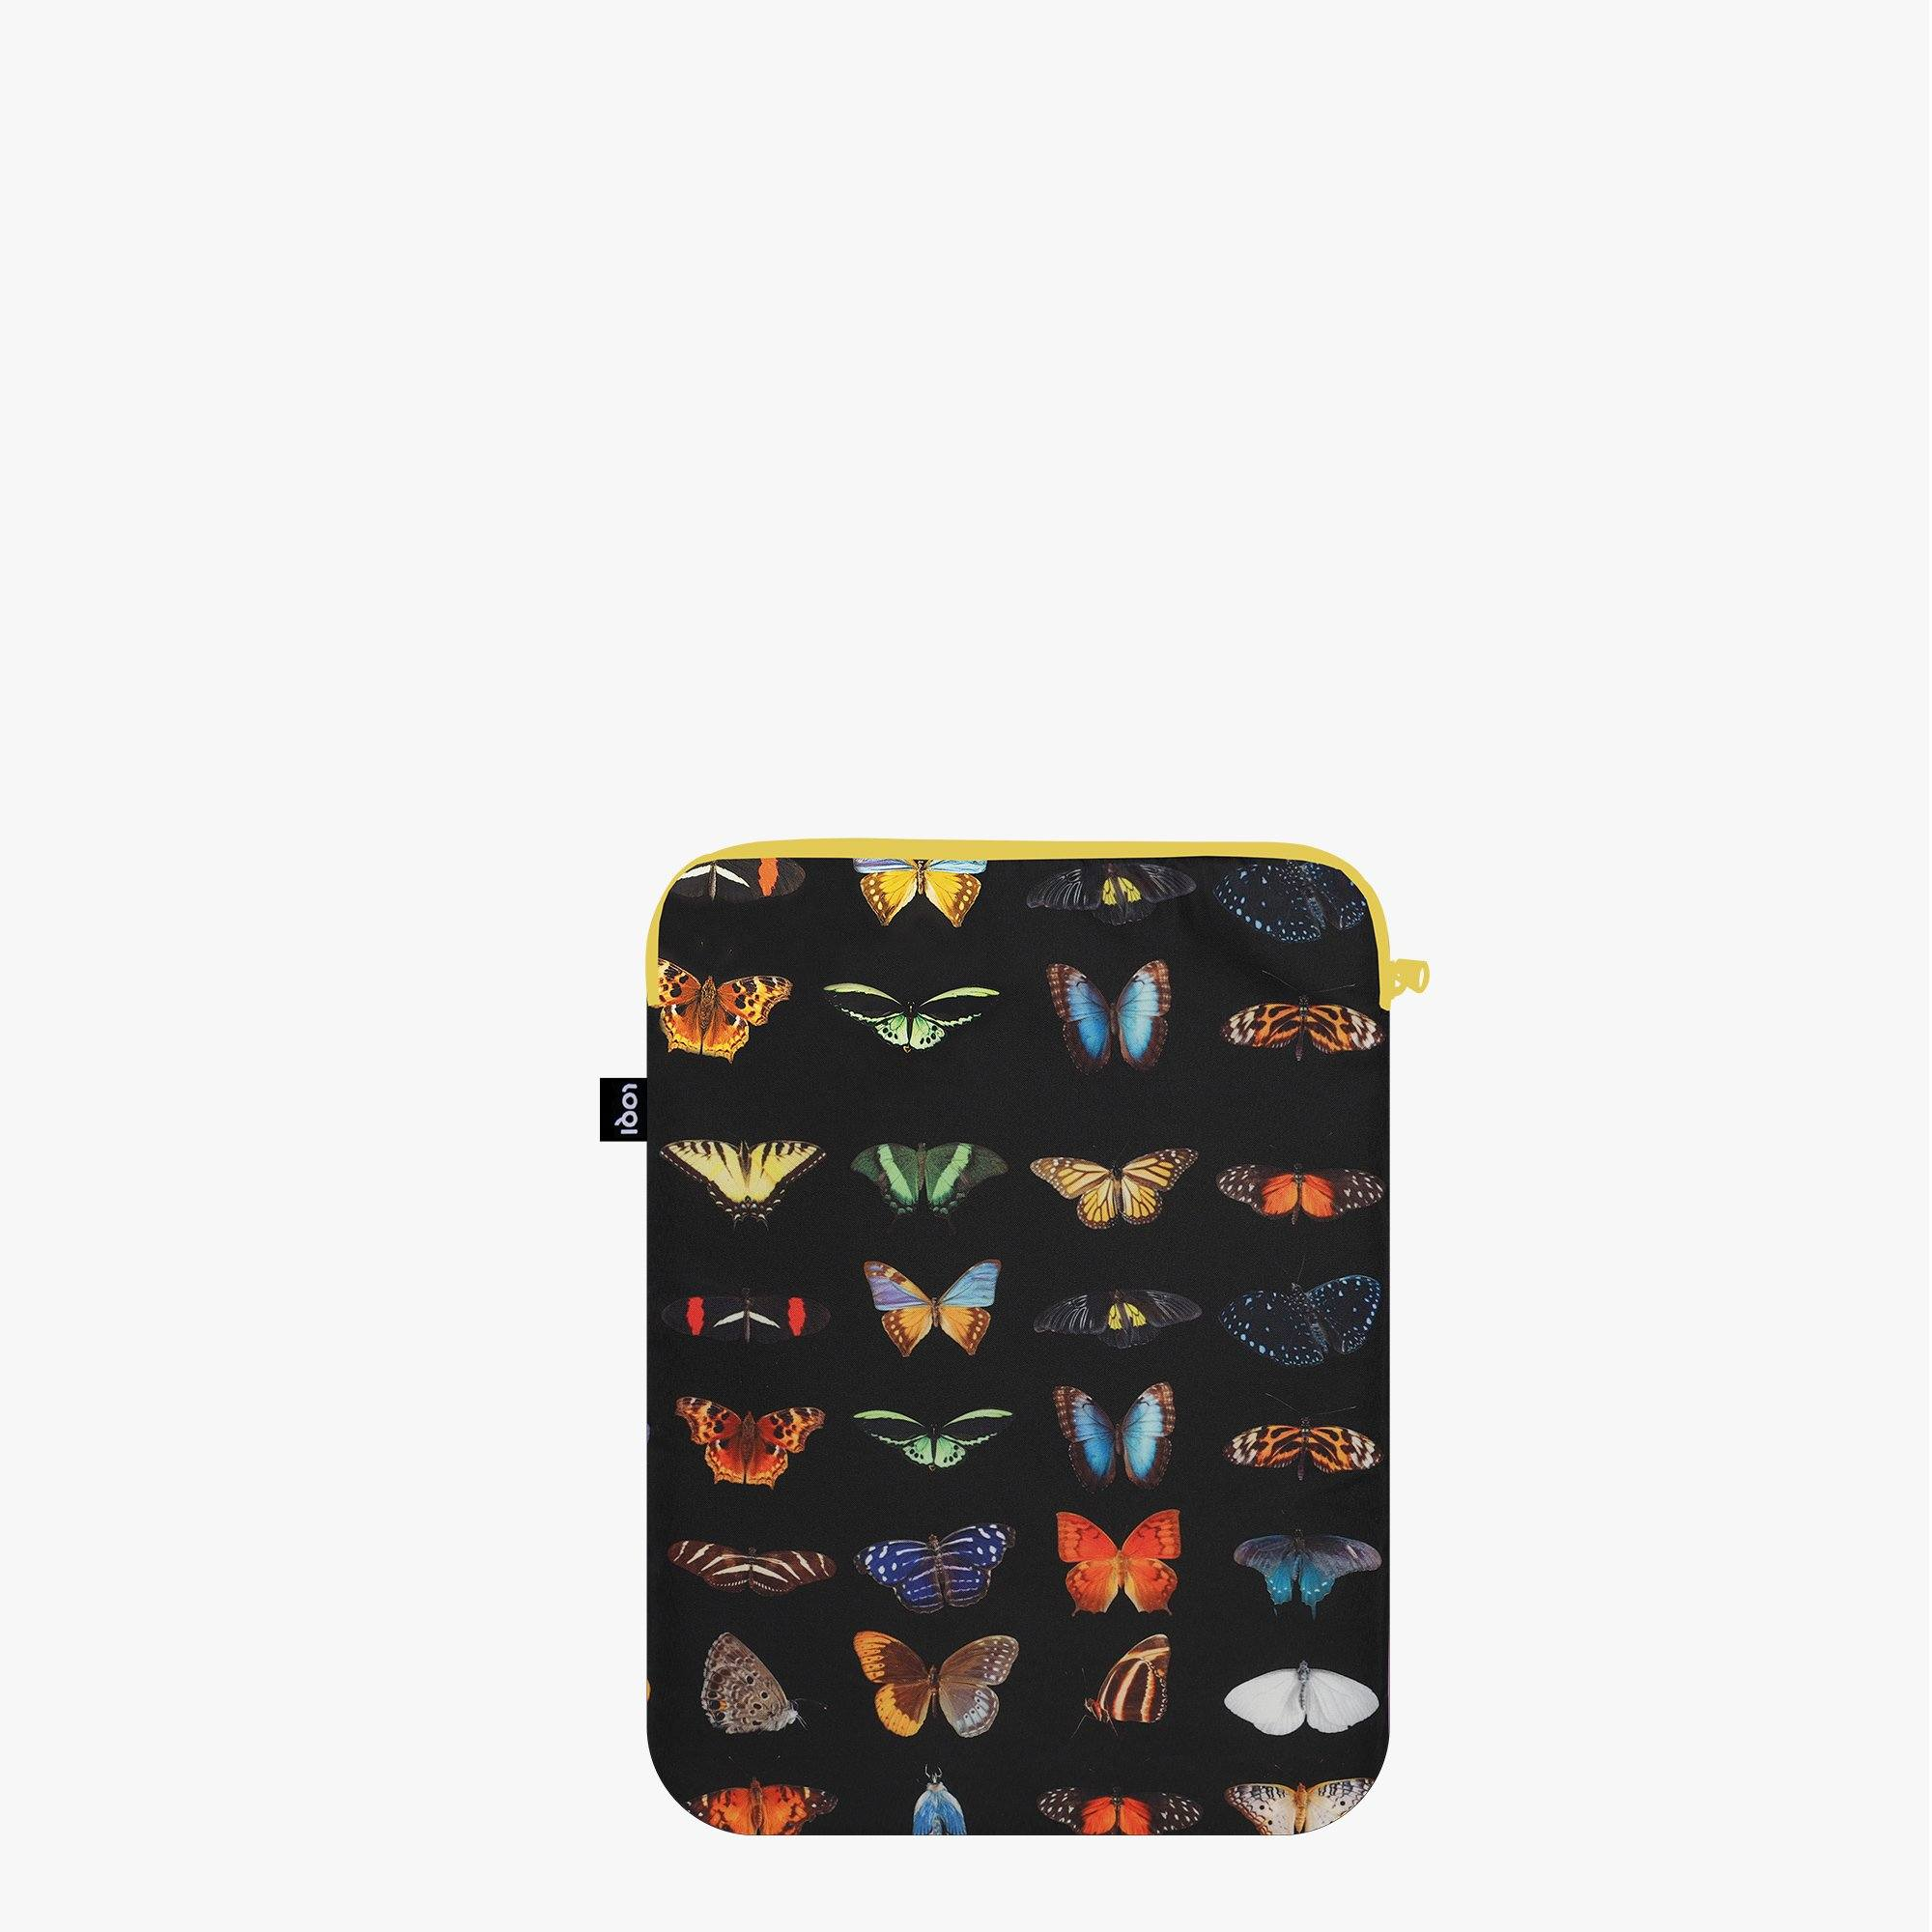 Butterflies and Moths Recycled Laptop Cover